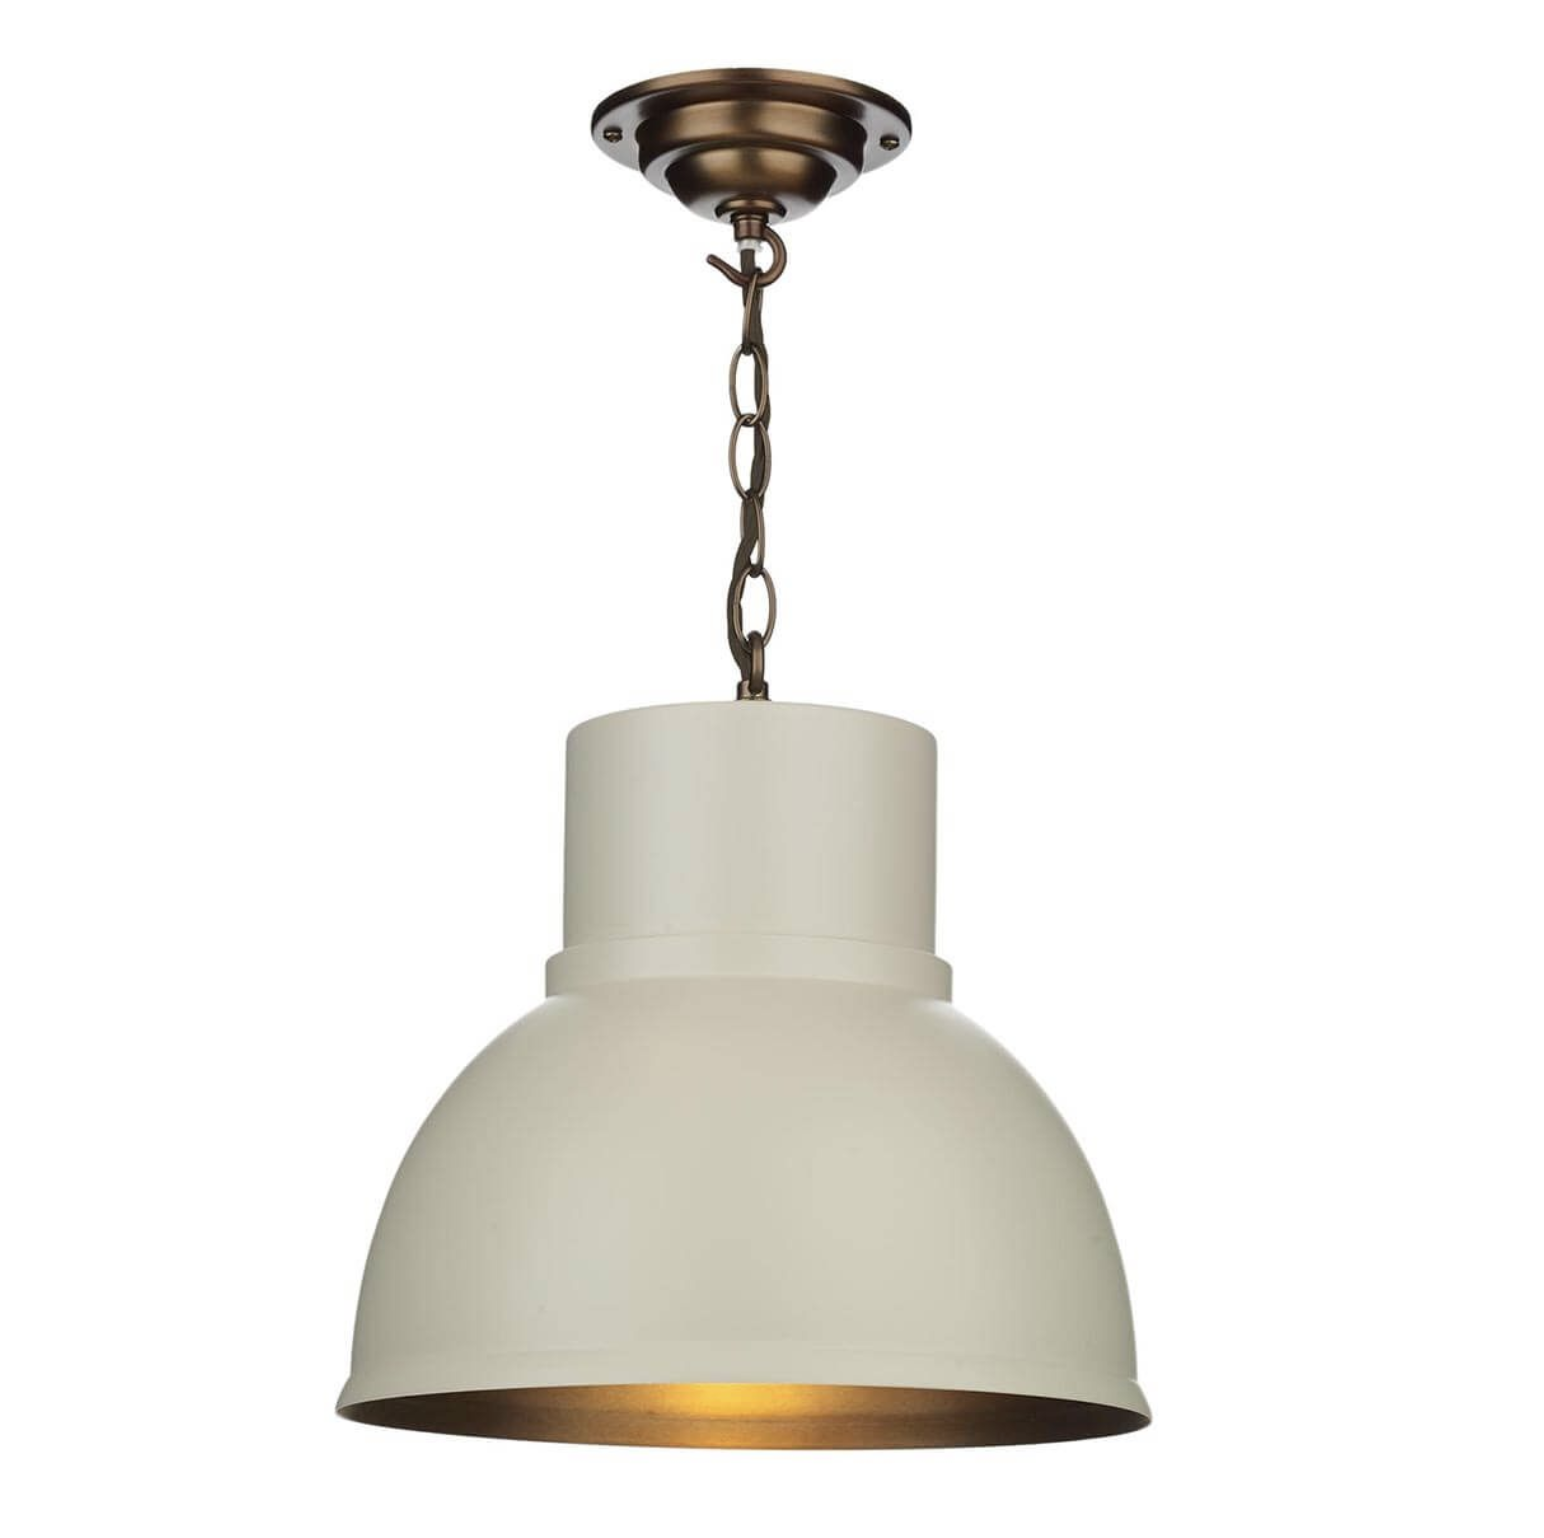 Cream Single Pendant with Antique Inner - ID 9450